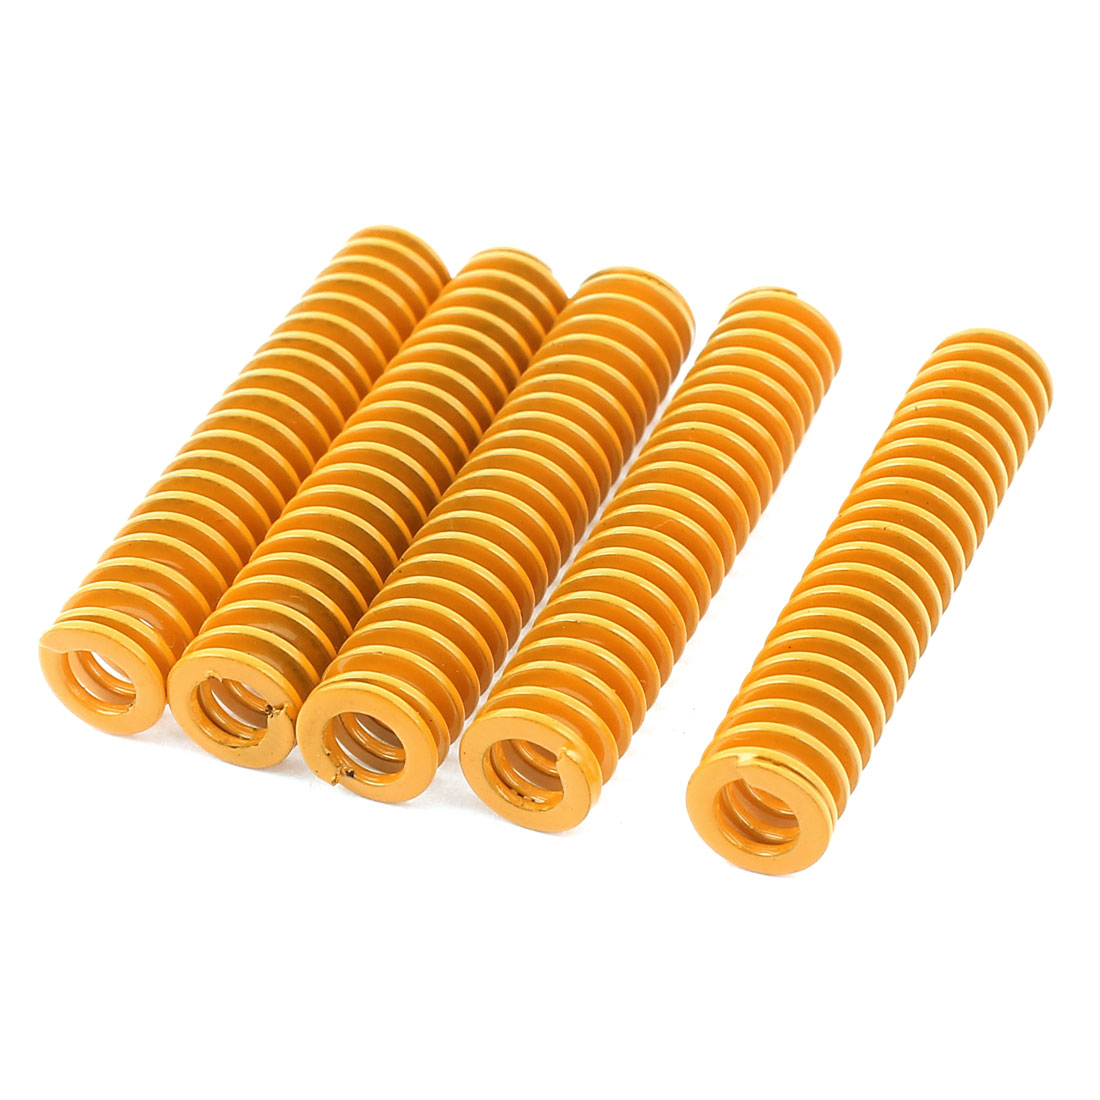 8mmx40mm Mechanical Metal Spiral Compression Coil Spring Yellow 5 Pcs